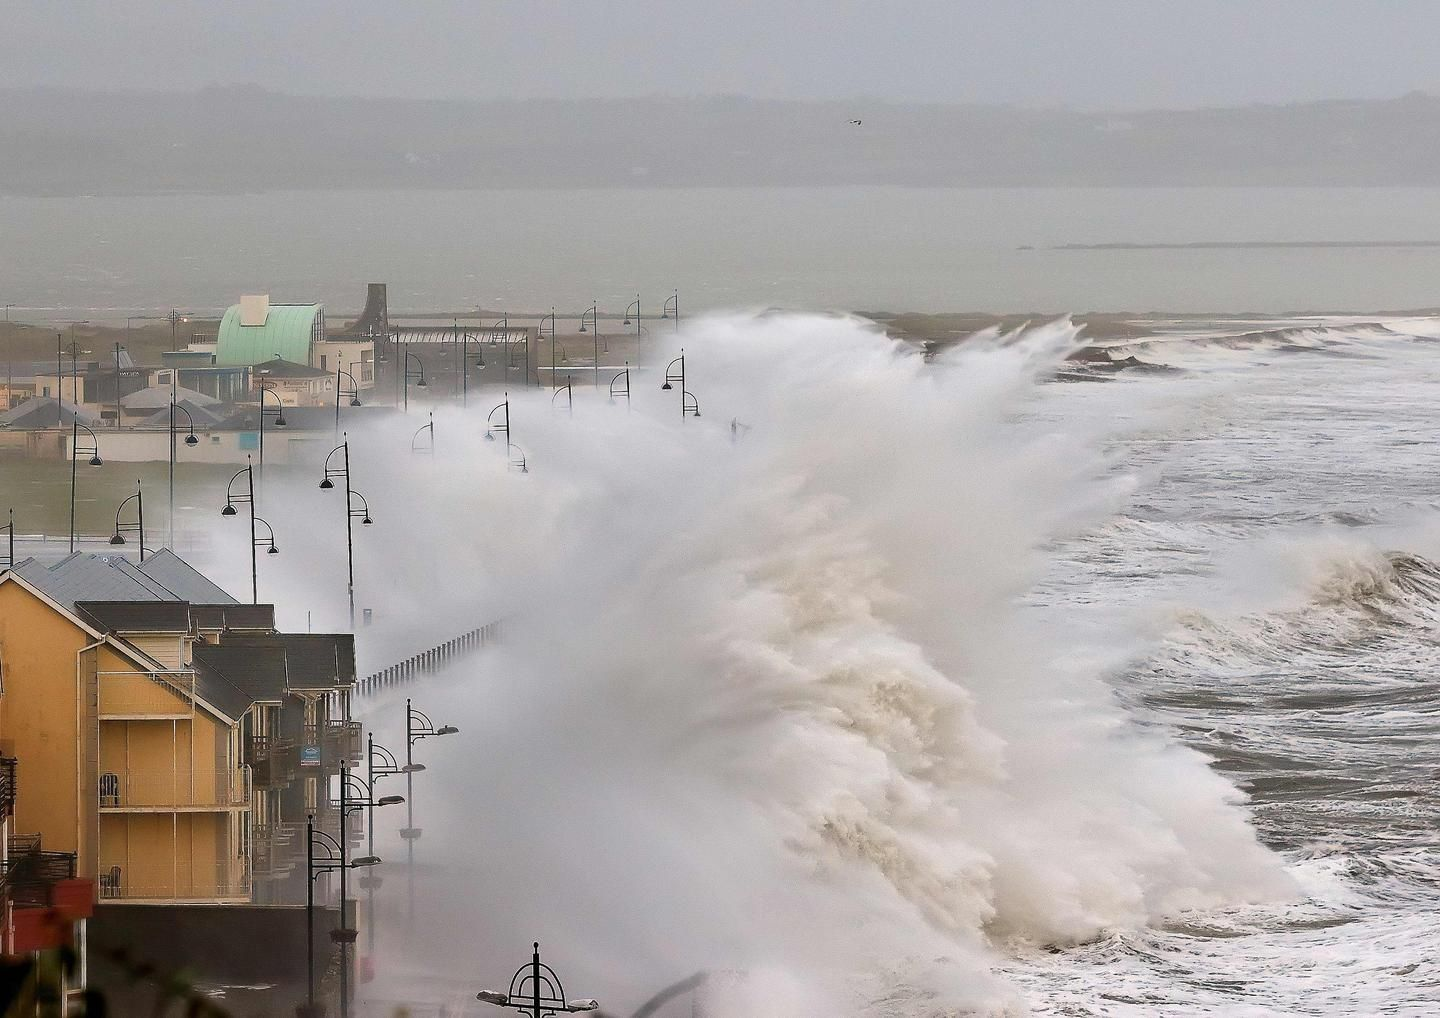 Source : http://www.irishtimes.com/news/ireland/irish-news/storm-frank-1.2480371